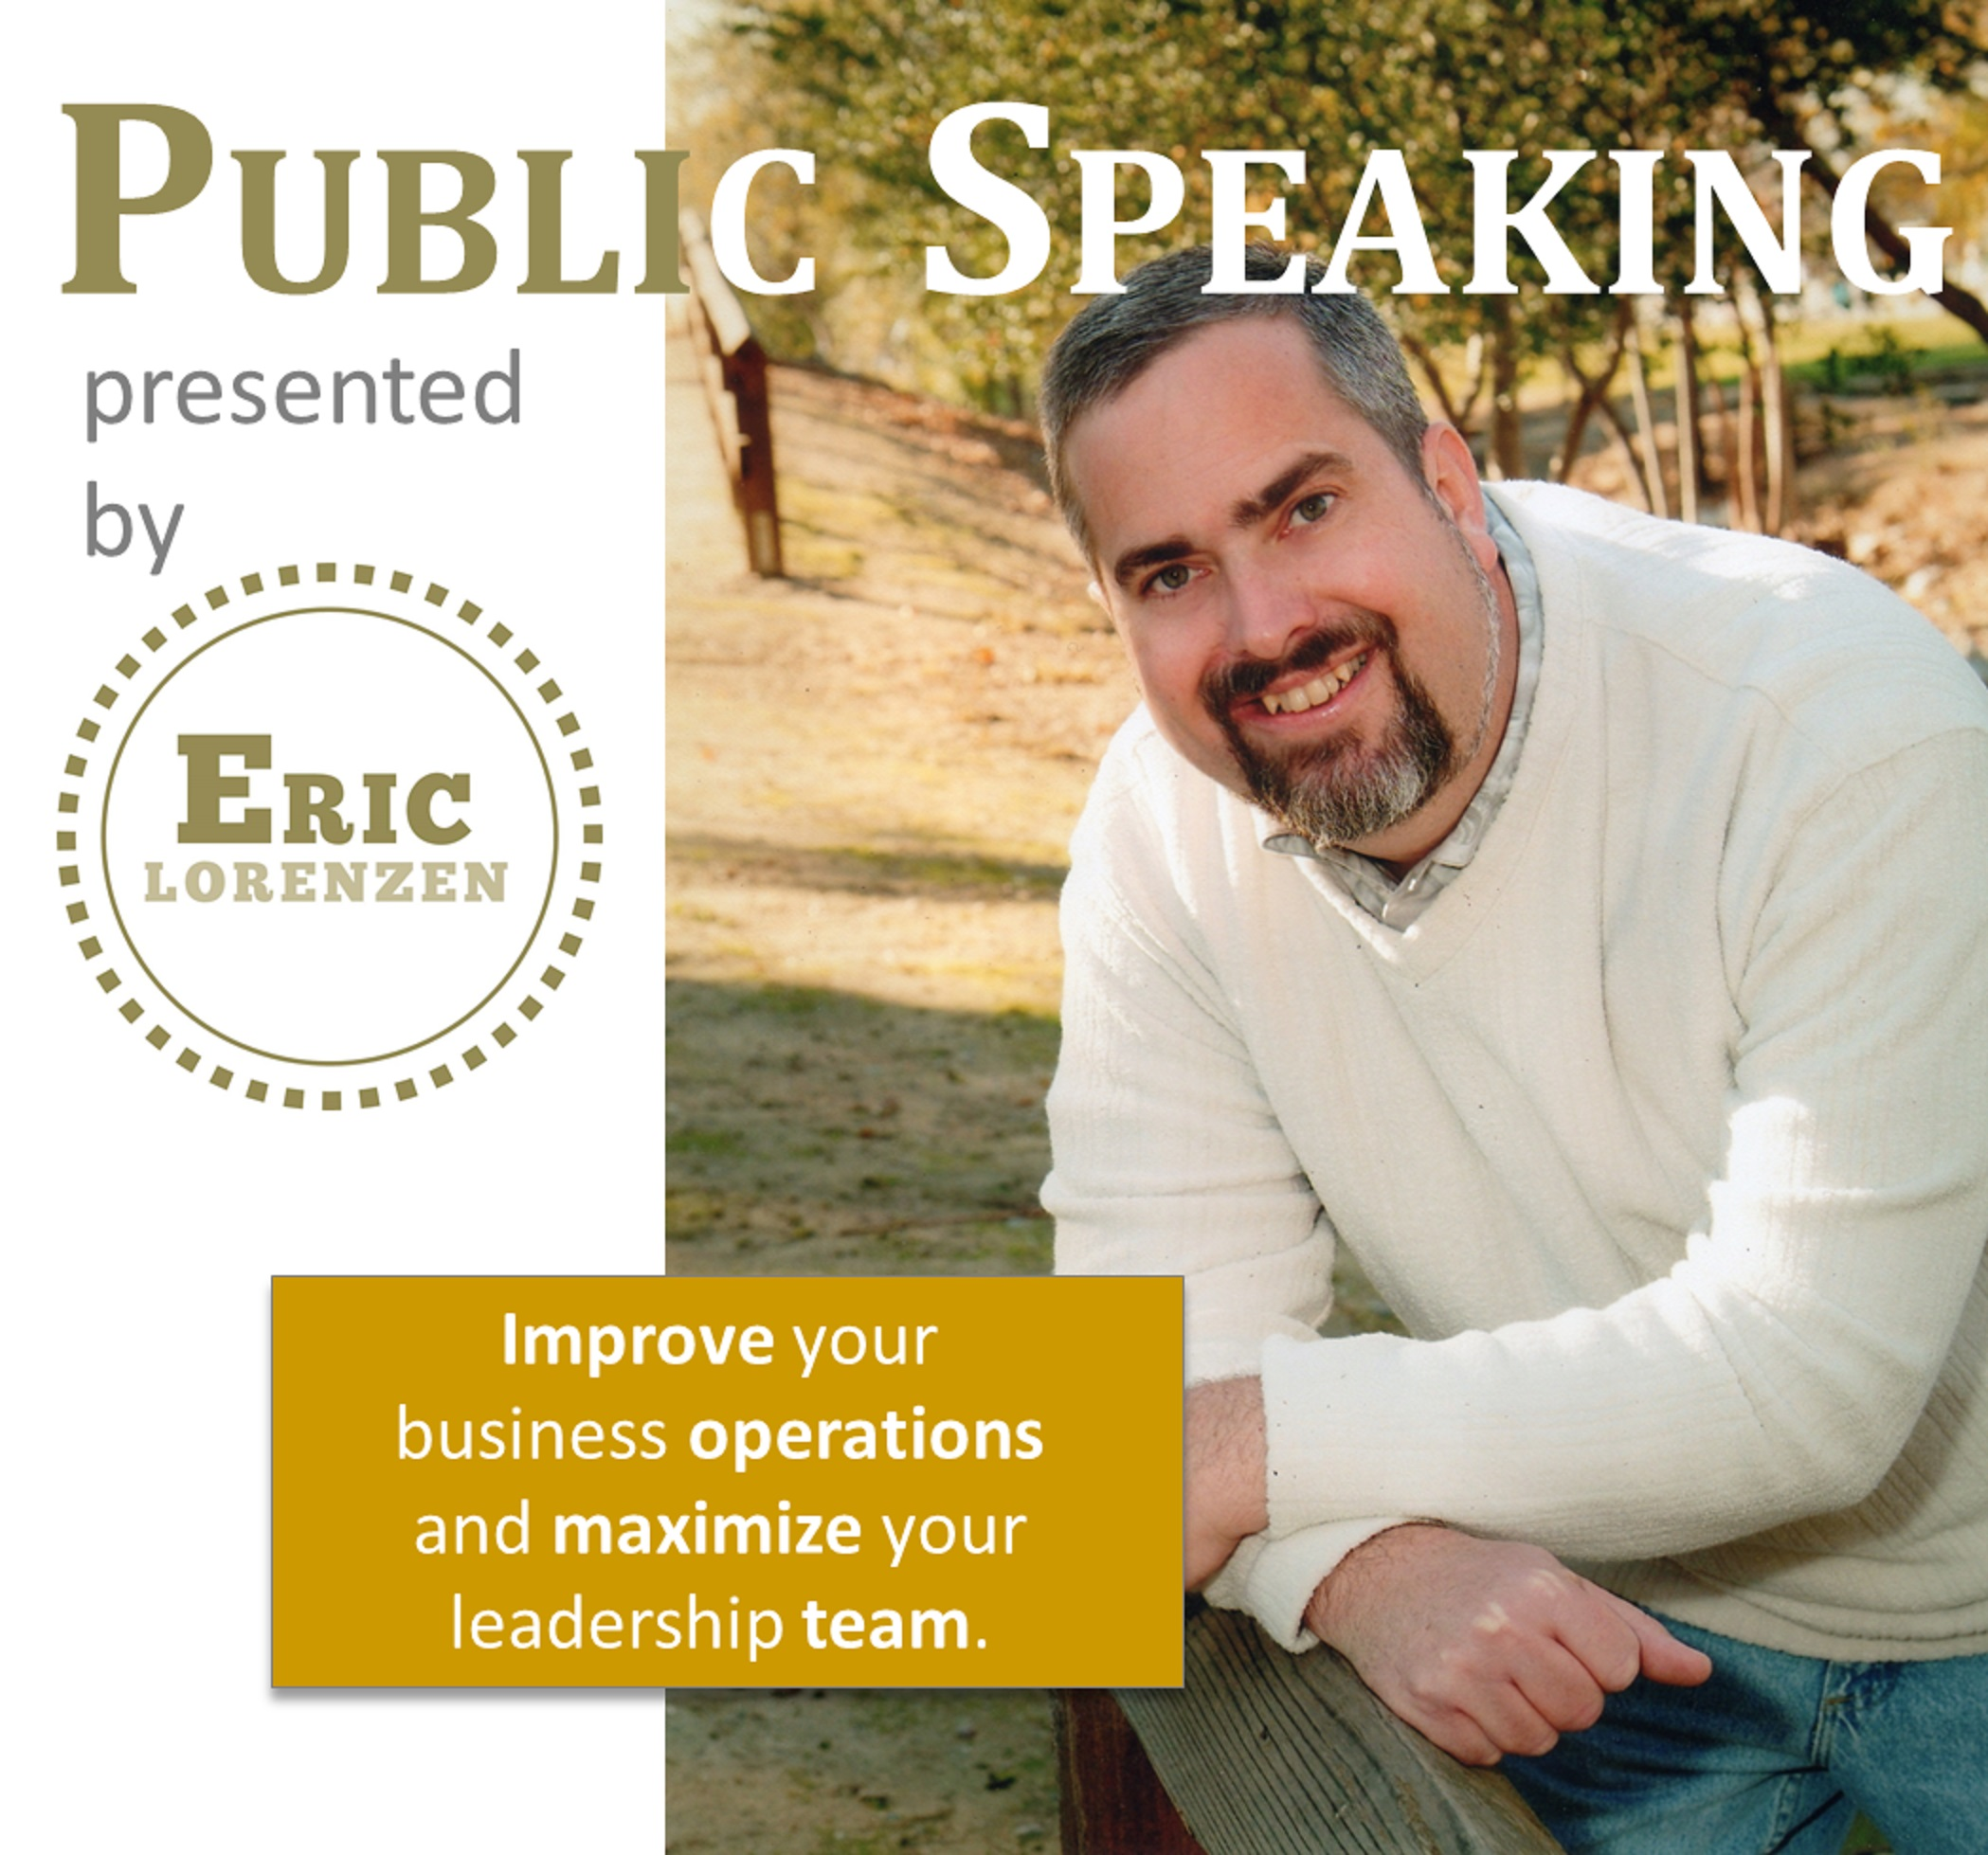 Public Speaking by Eric Lorenzen